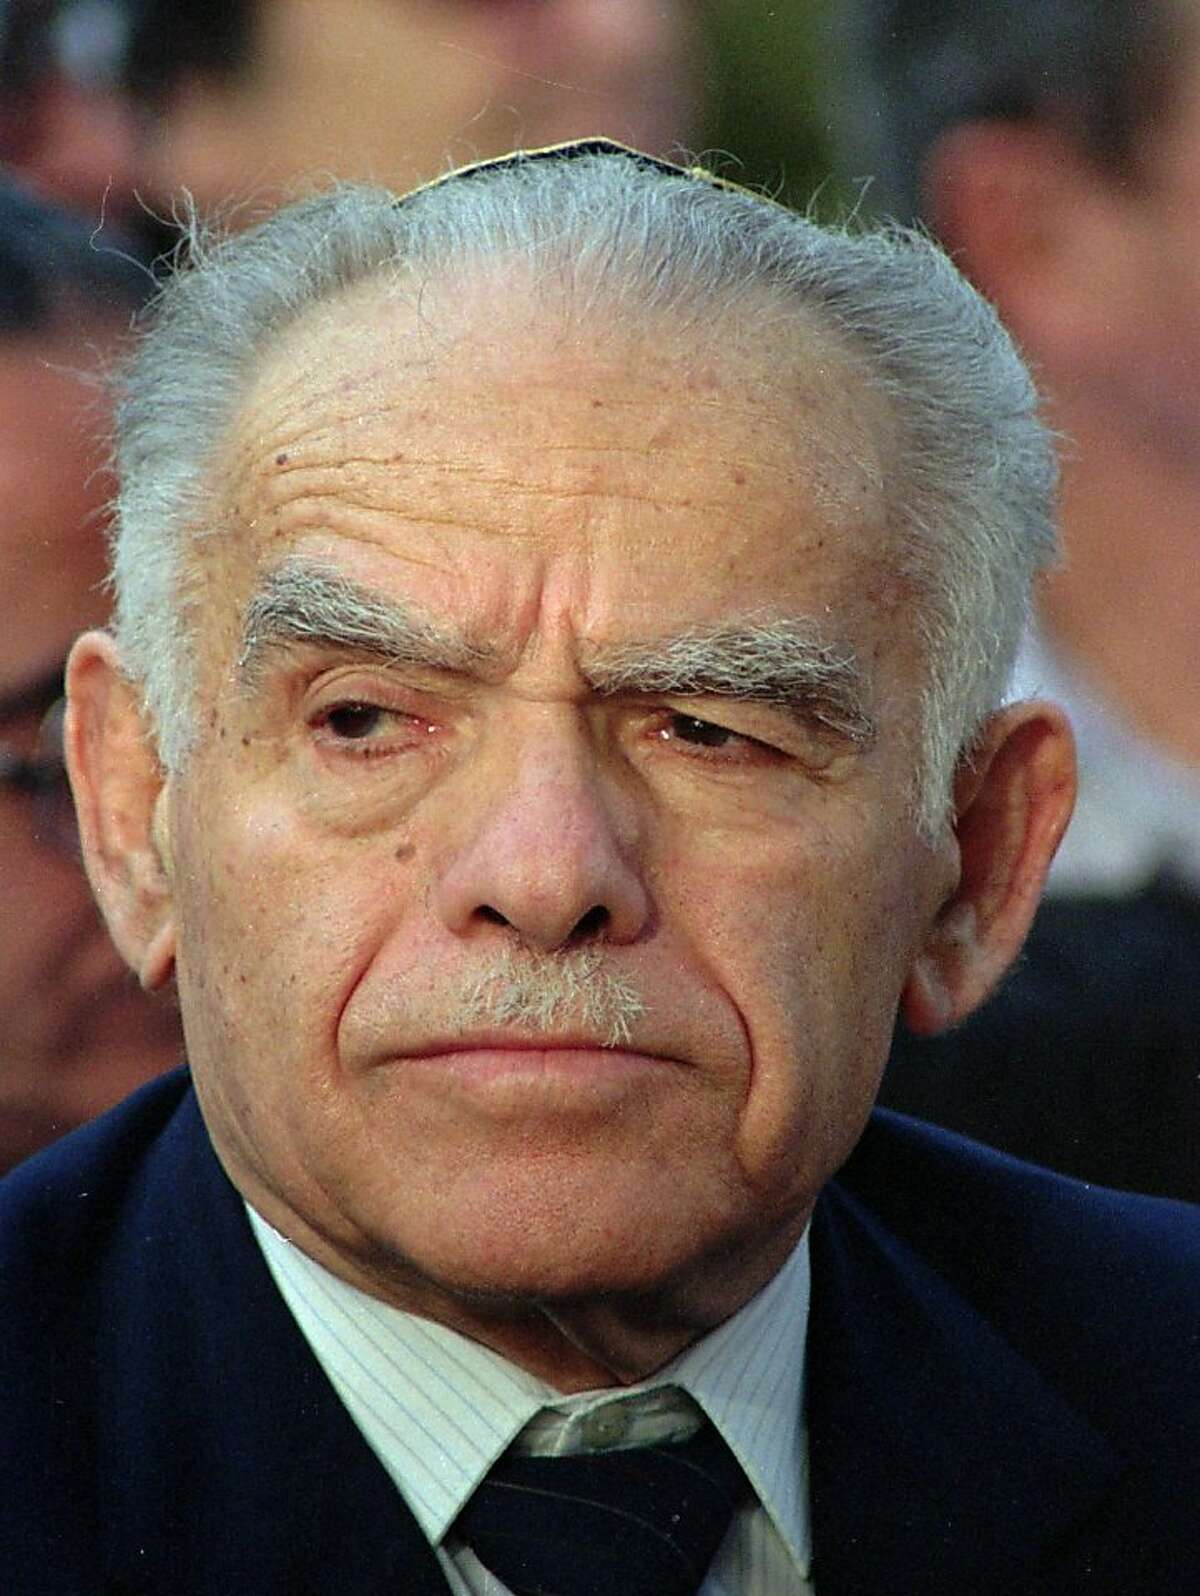 """FILE- This his May, 1991 file photo shows former Israeli Prime Minister Yitzhak Shamir in Jerusalem. Israeli media are reporting that former Prime Minister Yitzhak Shamir has died. He was 96. Israeli Prime Minister Benjamin Netnayhau mourned Shamir's death Saturday, saying in a statement that Shamir """"led Israel with a deep loyalty to the nation.""""(AP Photo/File/Nati Harnick)"""